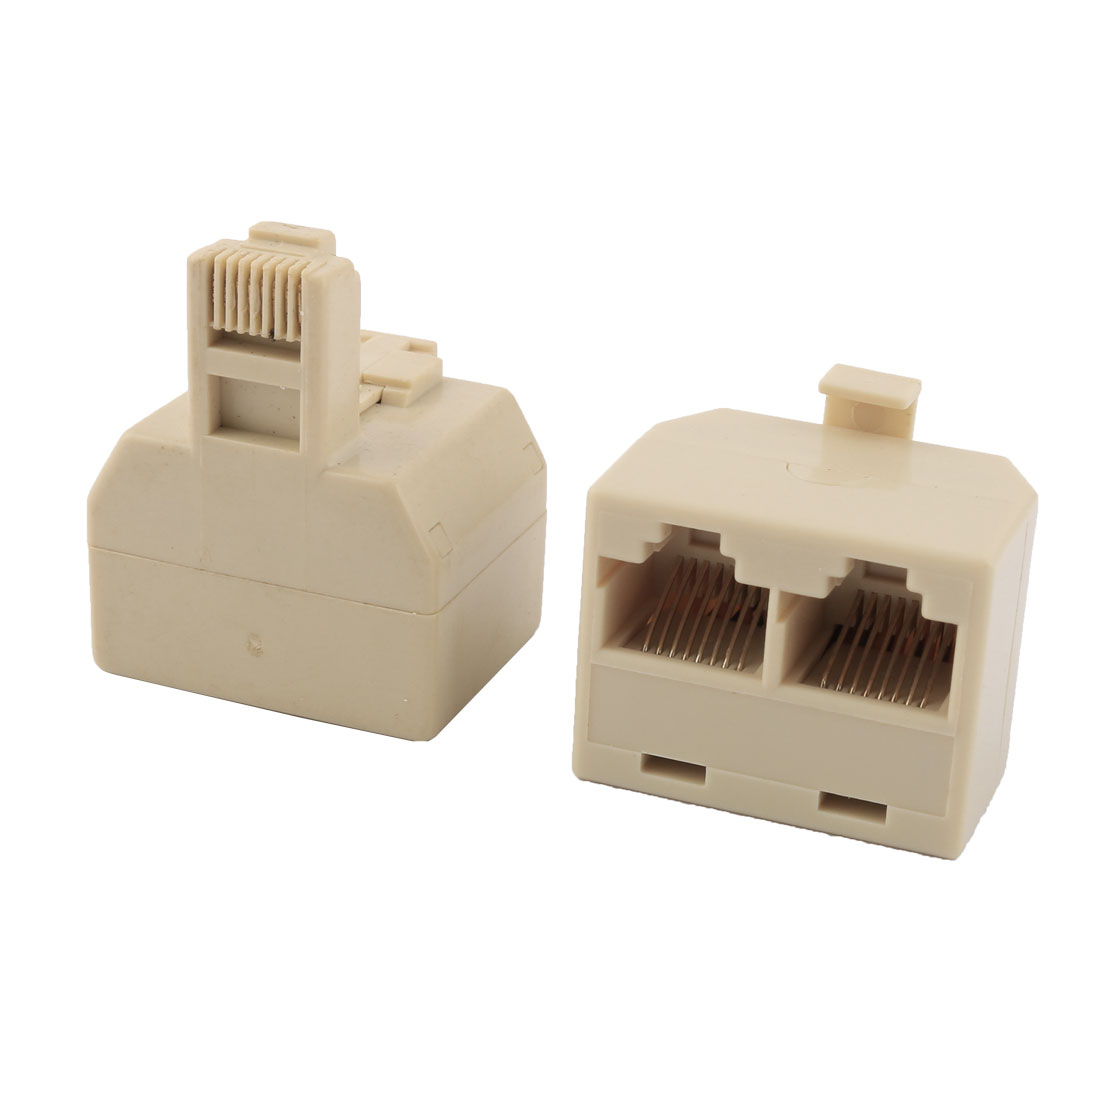 RJ45 8P8C Keystone 1 Male to 2 Female Port Network Cable Connector Splitter Beige 2pcs